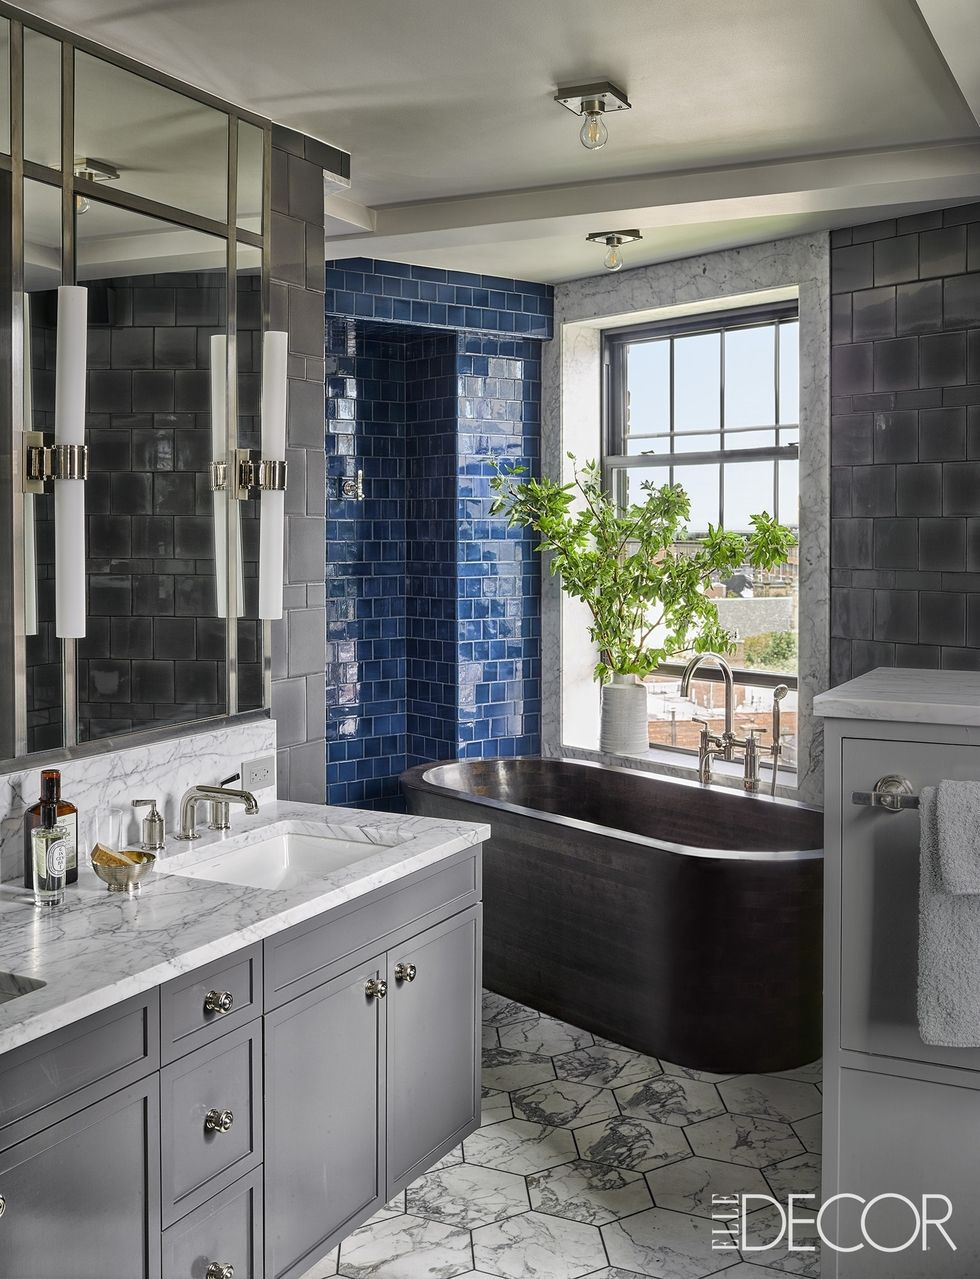 80 Best Bathroom Design Ideas - Gallery of Stylish Small & Large Bathrooms